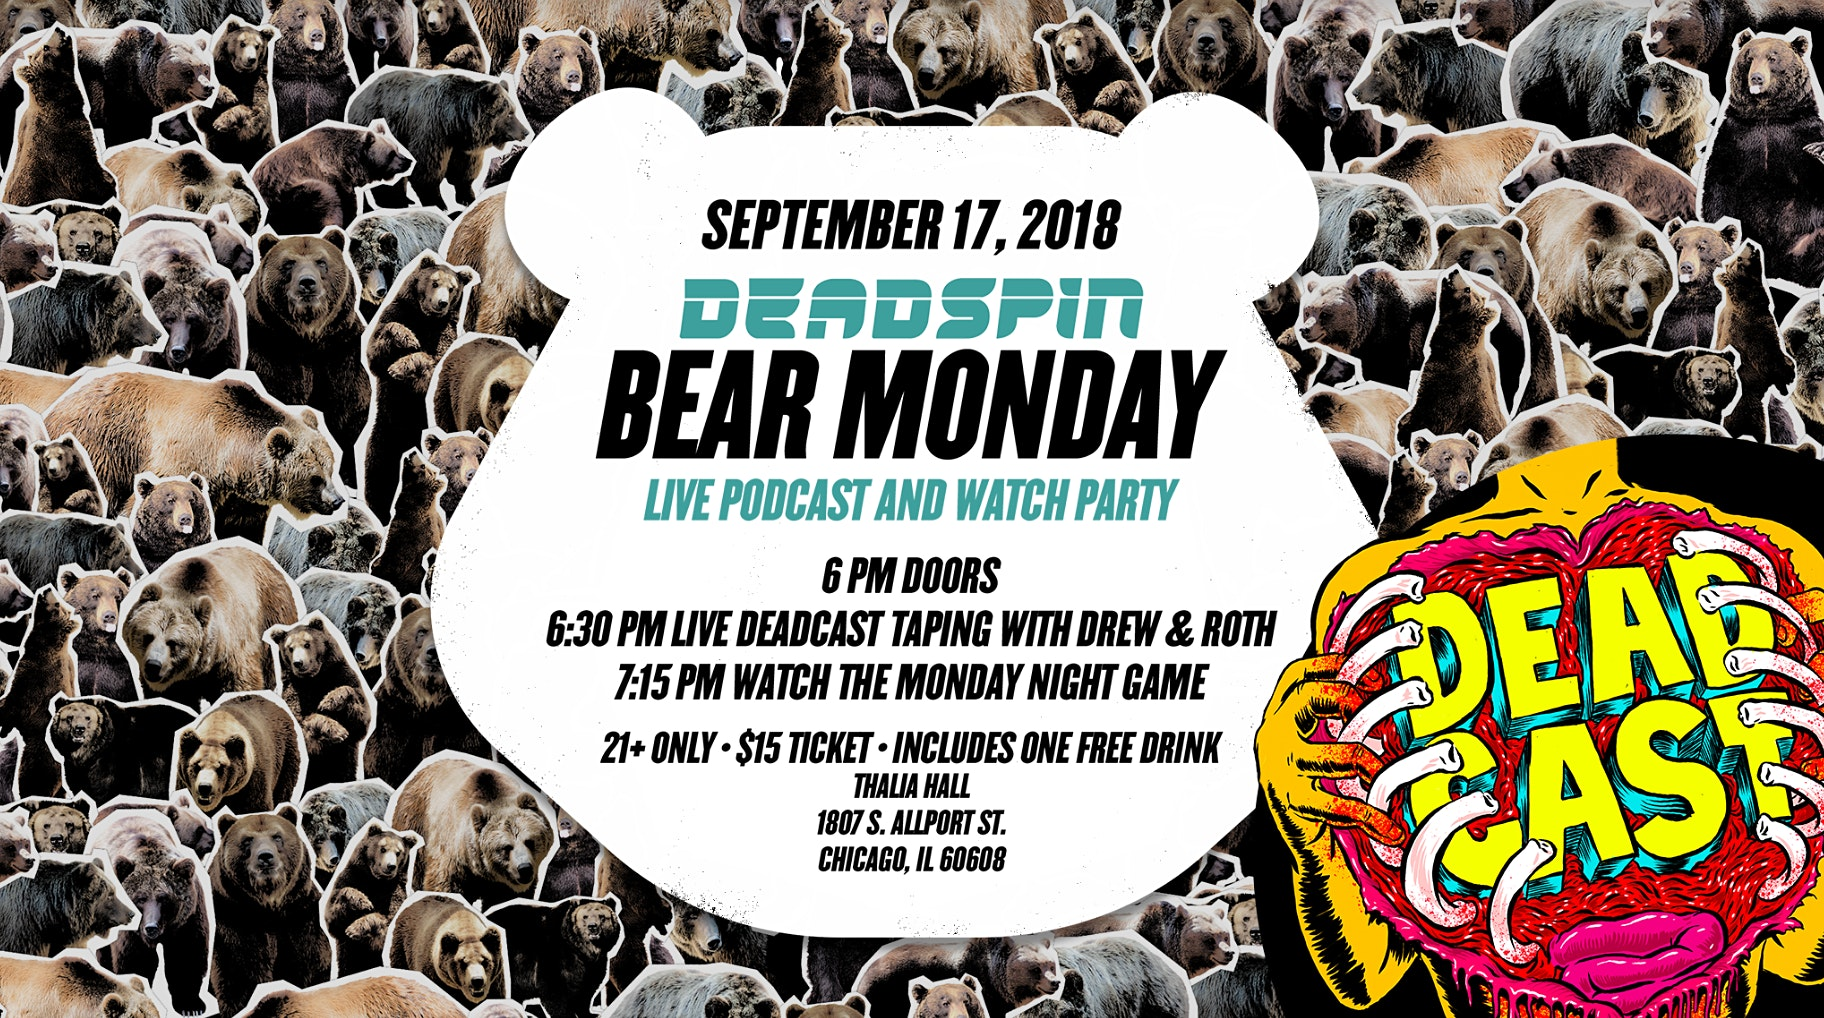 Deadspin Bear Monday: Podcast and Watch Party